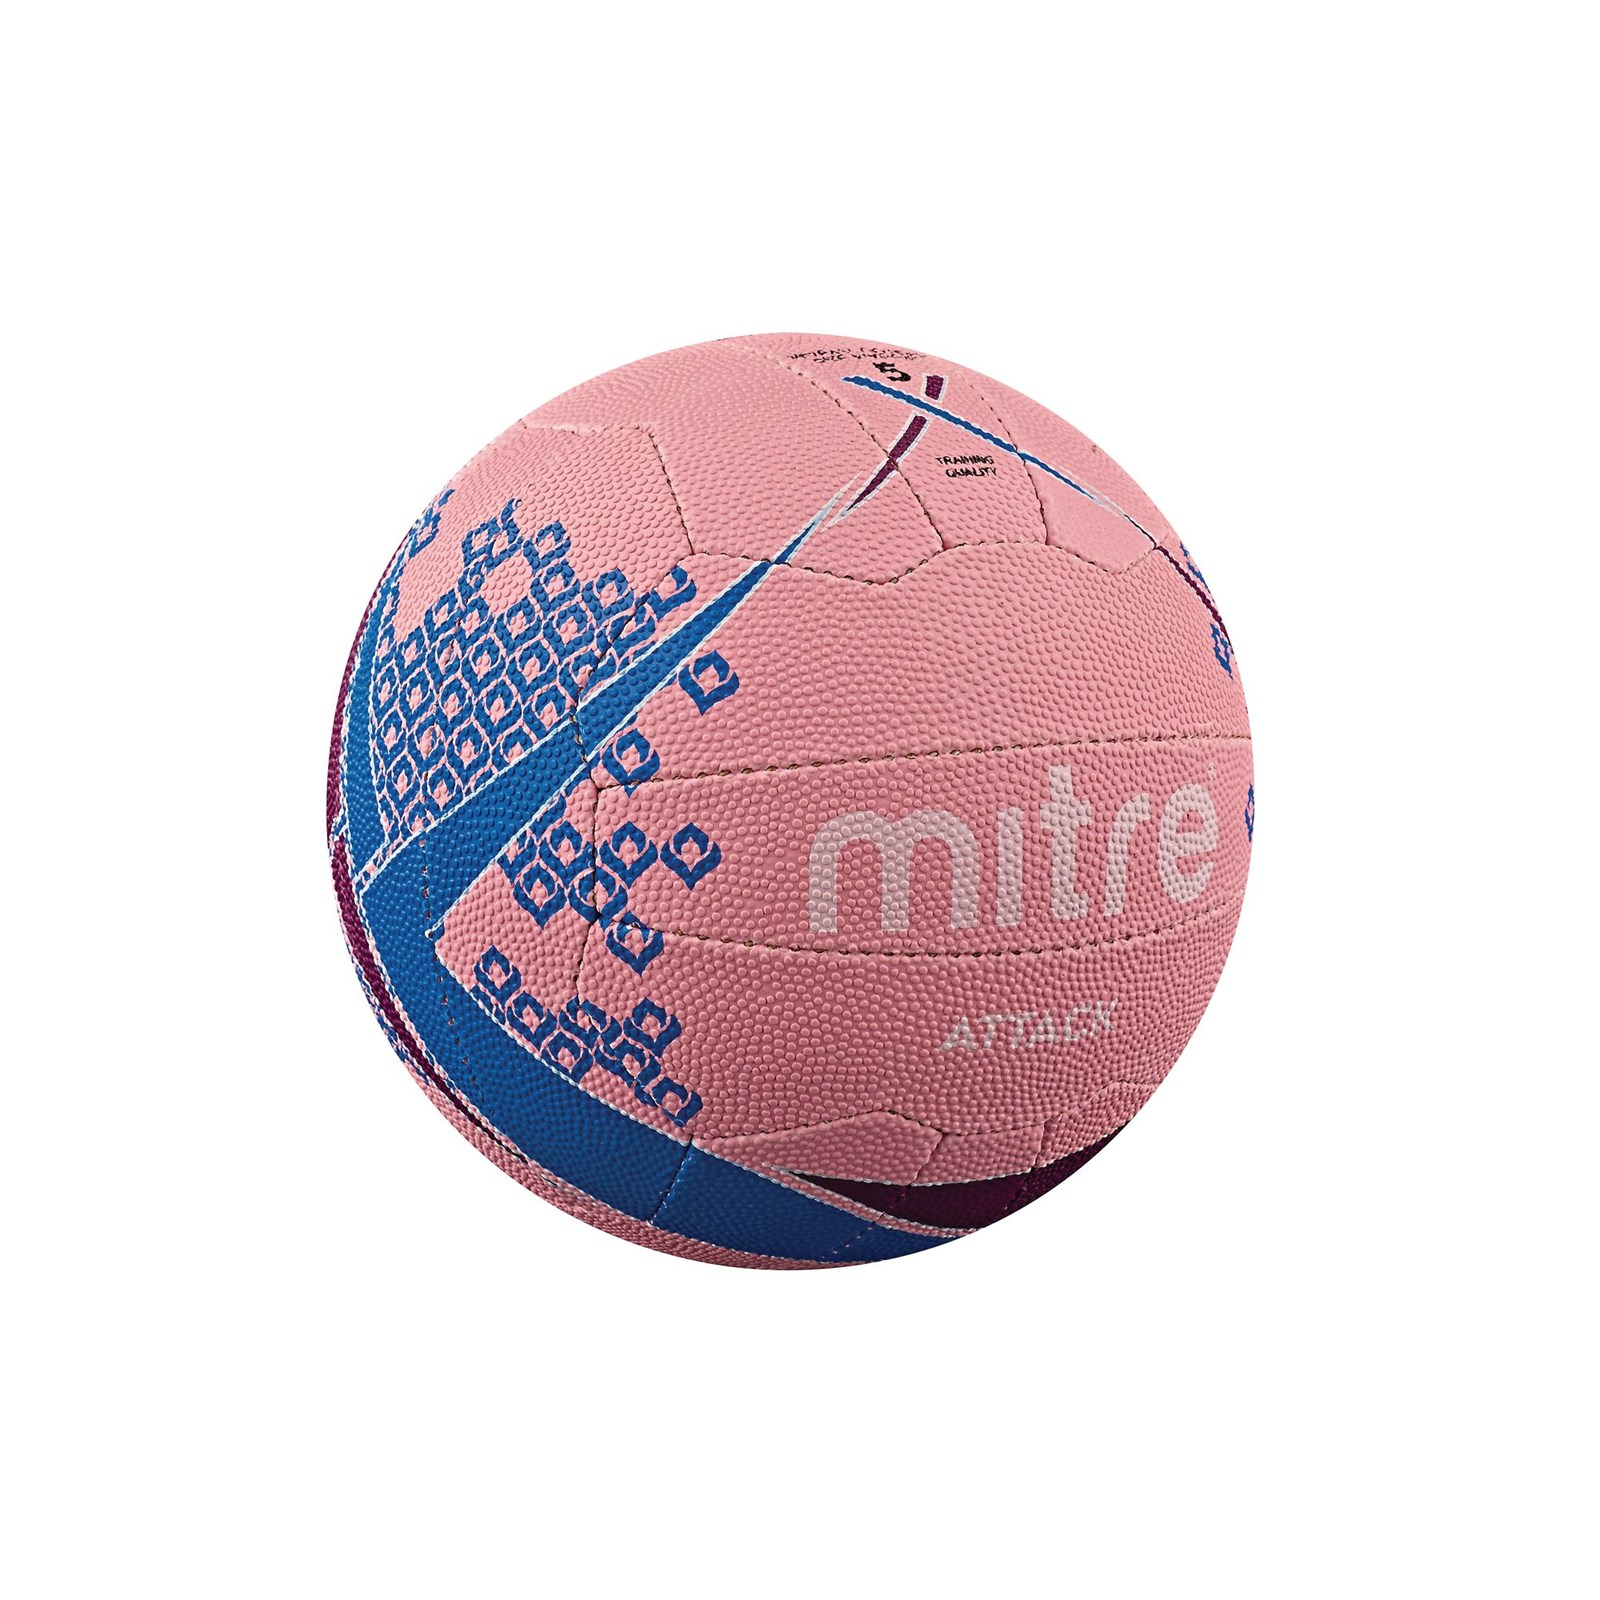 Mitre Attack Netball Size 5 Pack 12